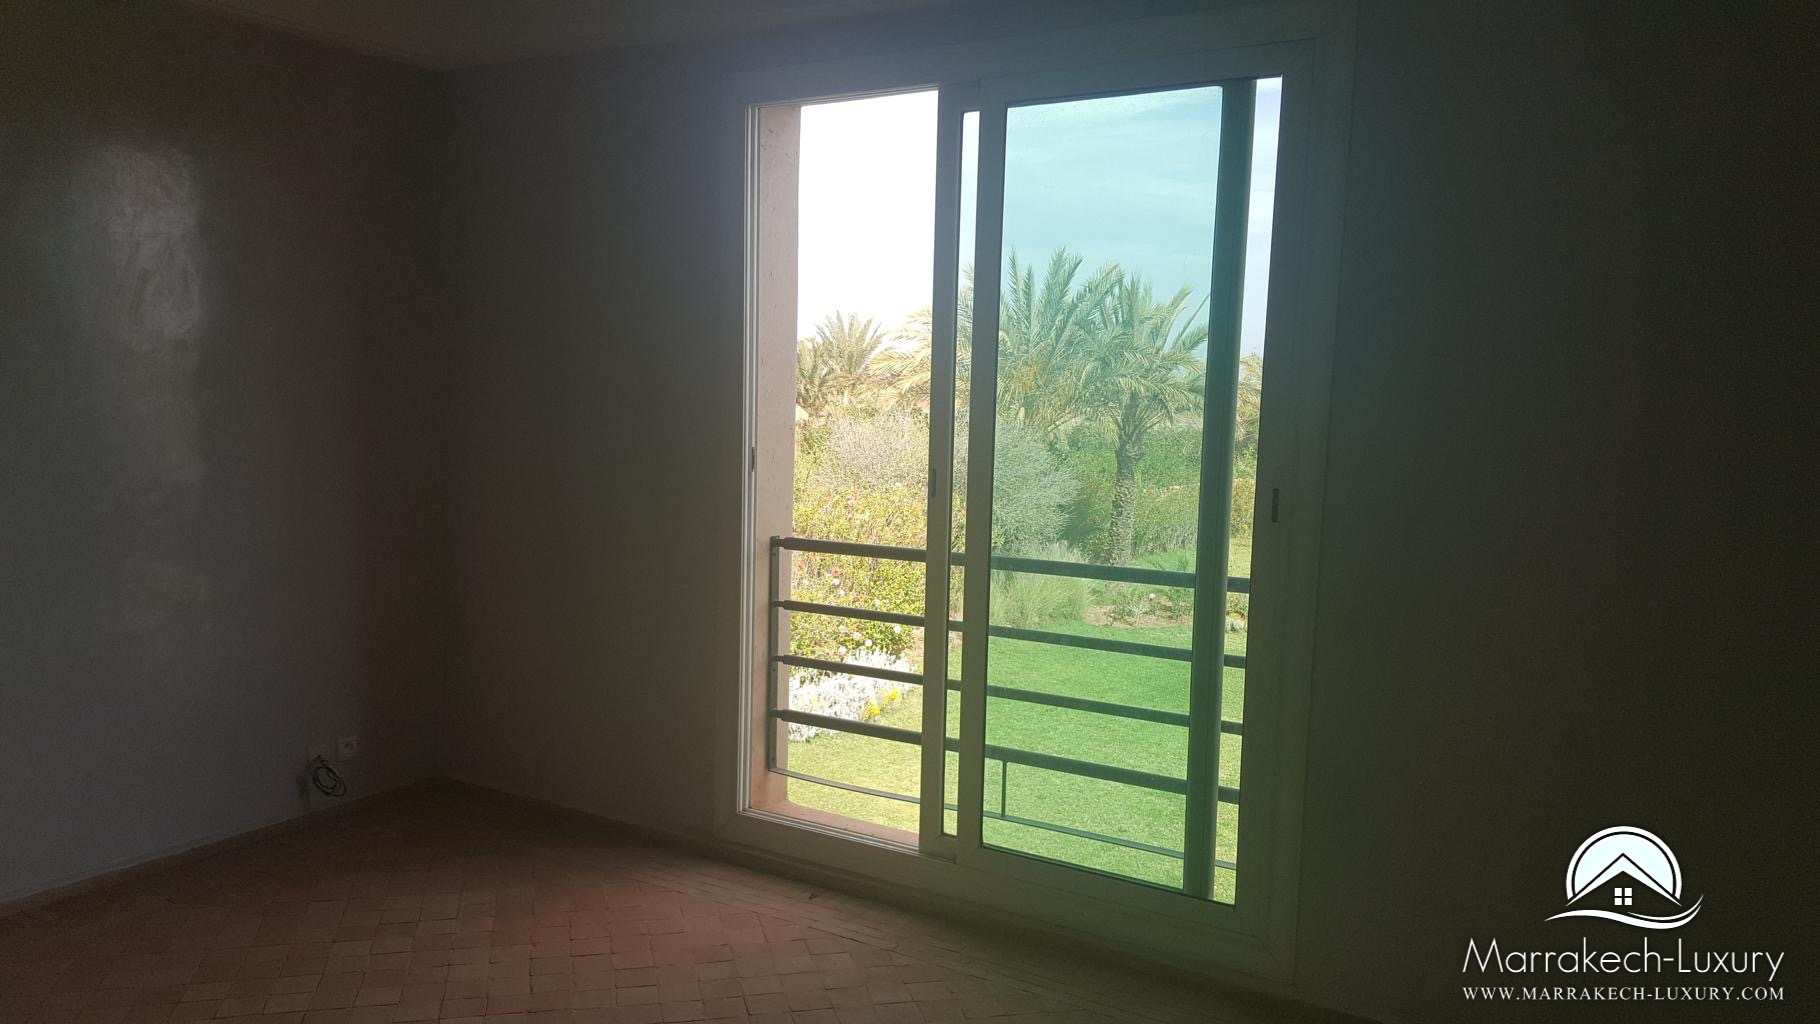 Vilalbab1005ma 33 agence immobili re marrakech acheter for Agence immobiliere 33